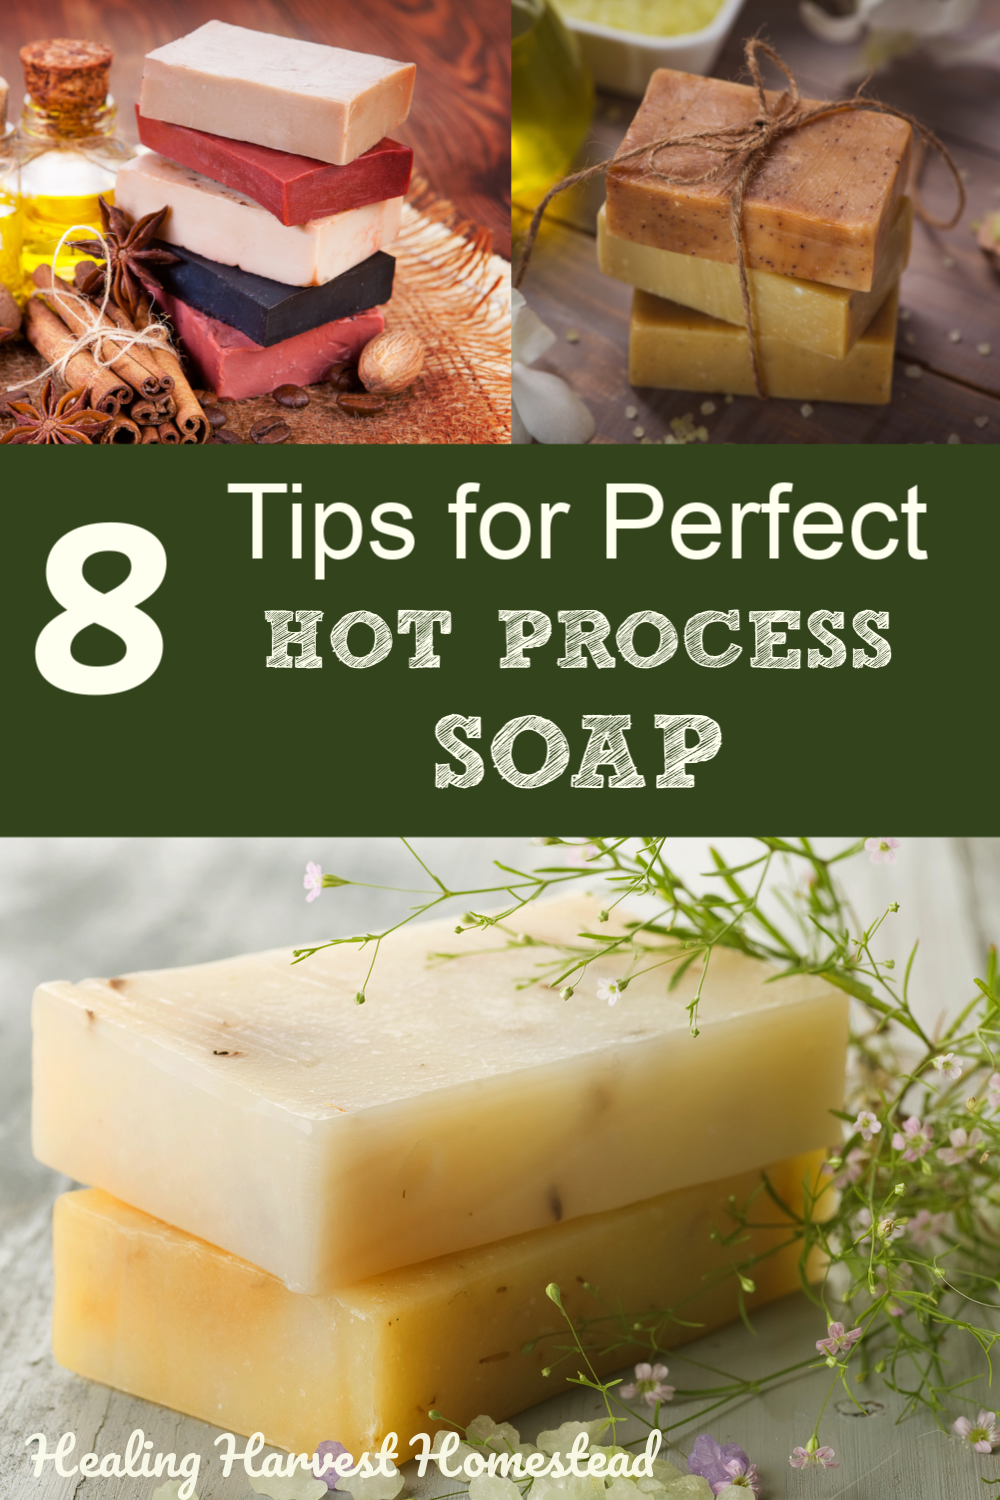 These are the BEST tips and tricks for making sure your handmade hot process soaps are perfect! Find out all the things to watch out for so you can make your own natural handmade soap using the hot process soap making method. #hotprocess #soap #making #natural #howtomake #healingharvesthomestead